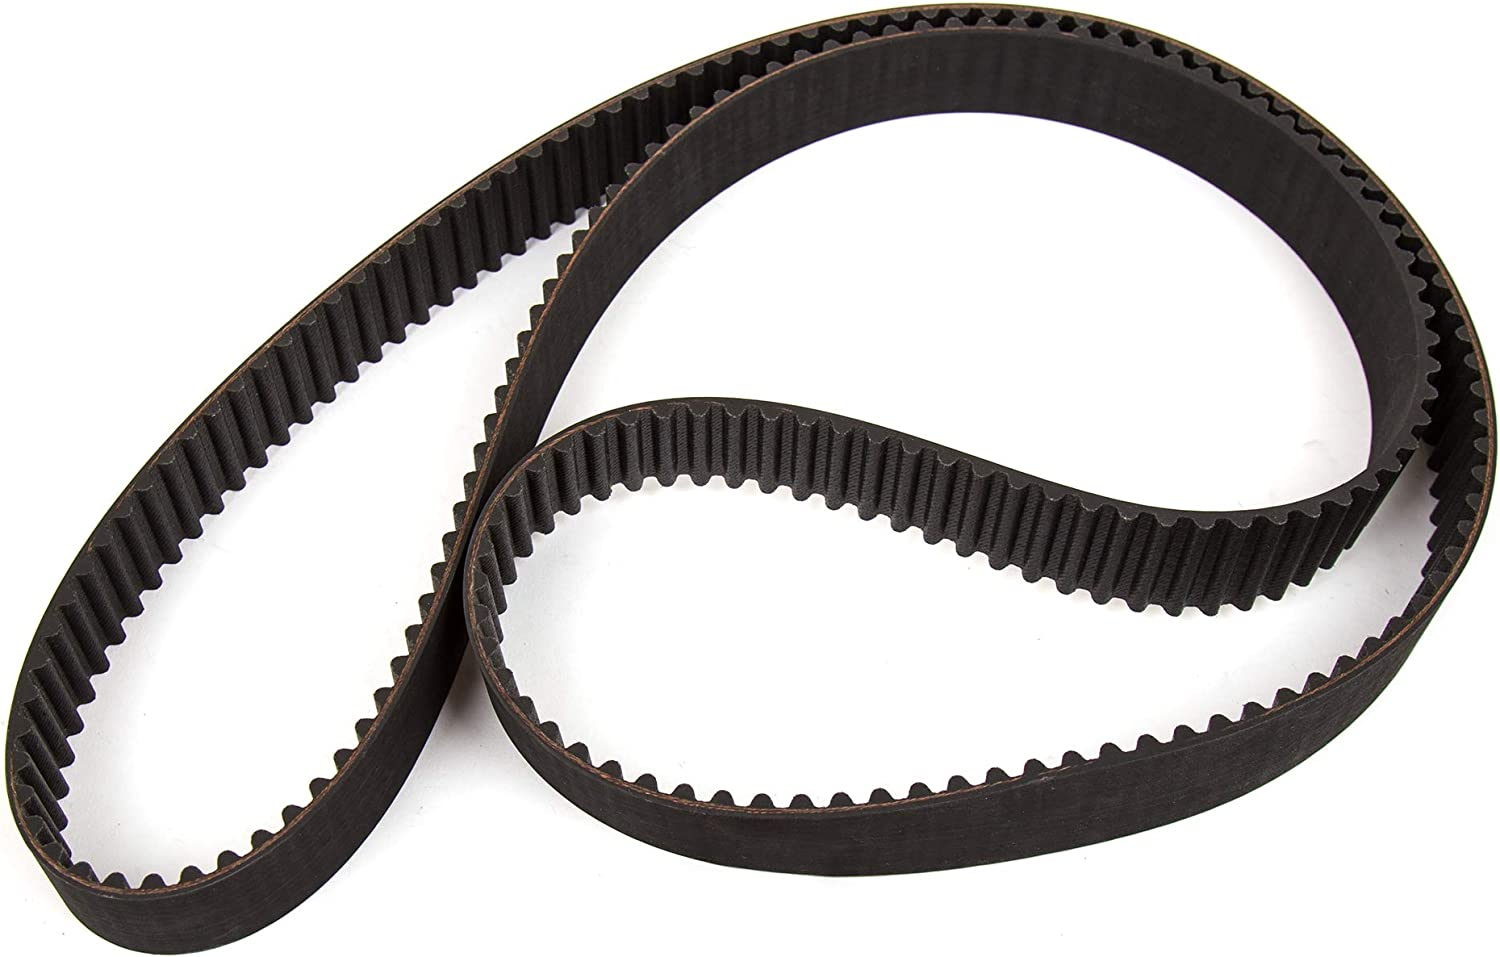 Evergreen TB306 Timing Belt Fits 99-06 Audi A4 TT Quattro VW Beetle Passat 1.8L TURBO DOHC 20v